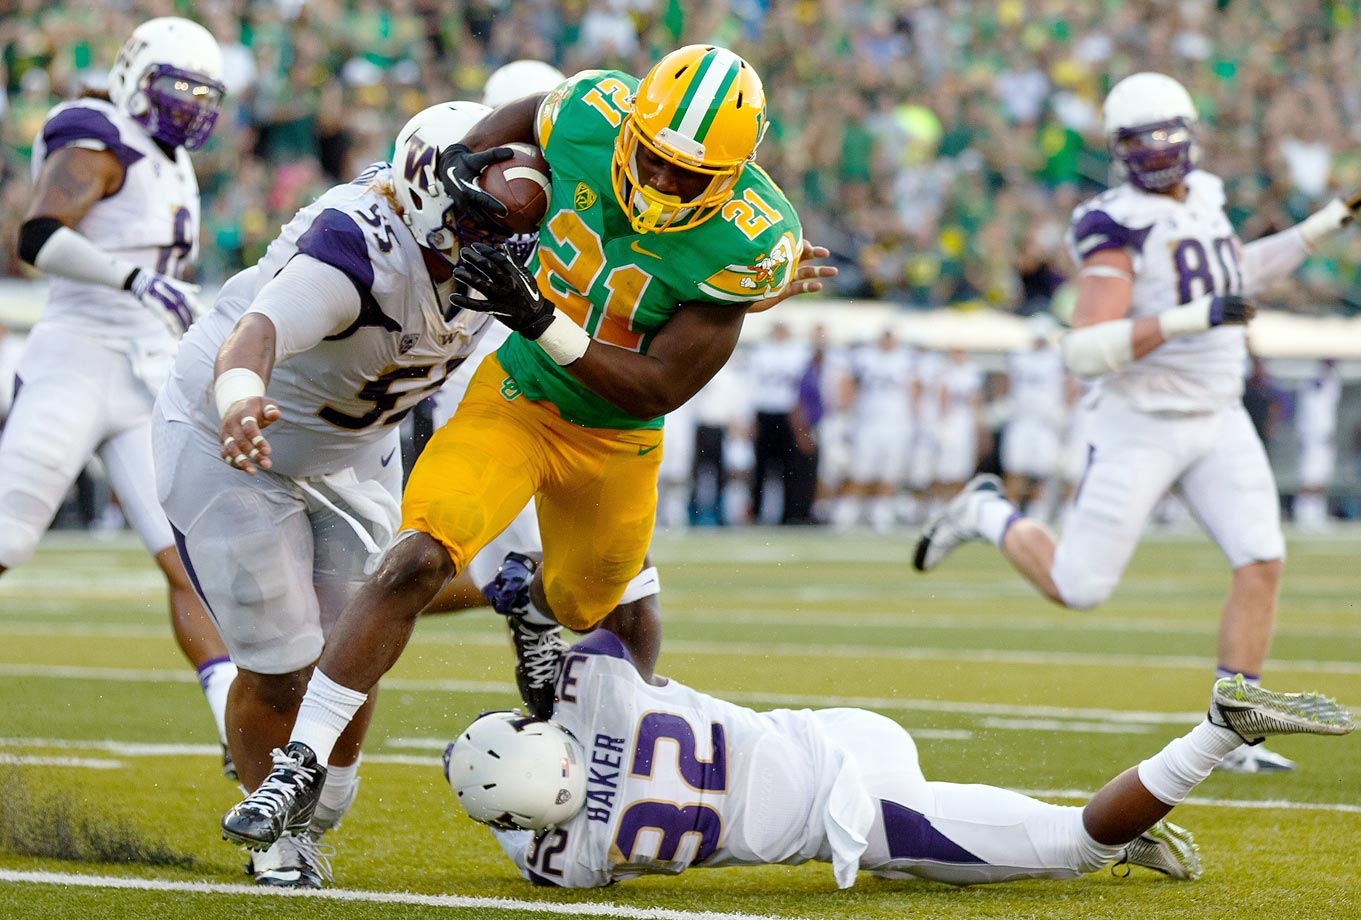 The Ducks won their 11th straight over the Huskies as Freeman rushed 29 times for 169 yards and four touchdowns.